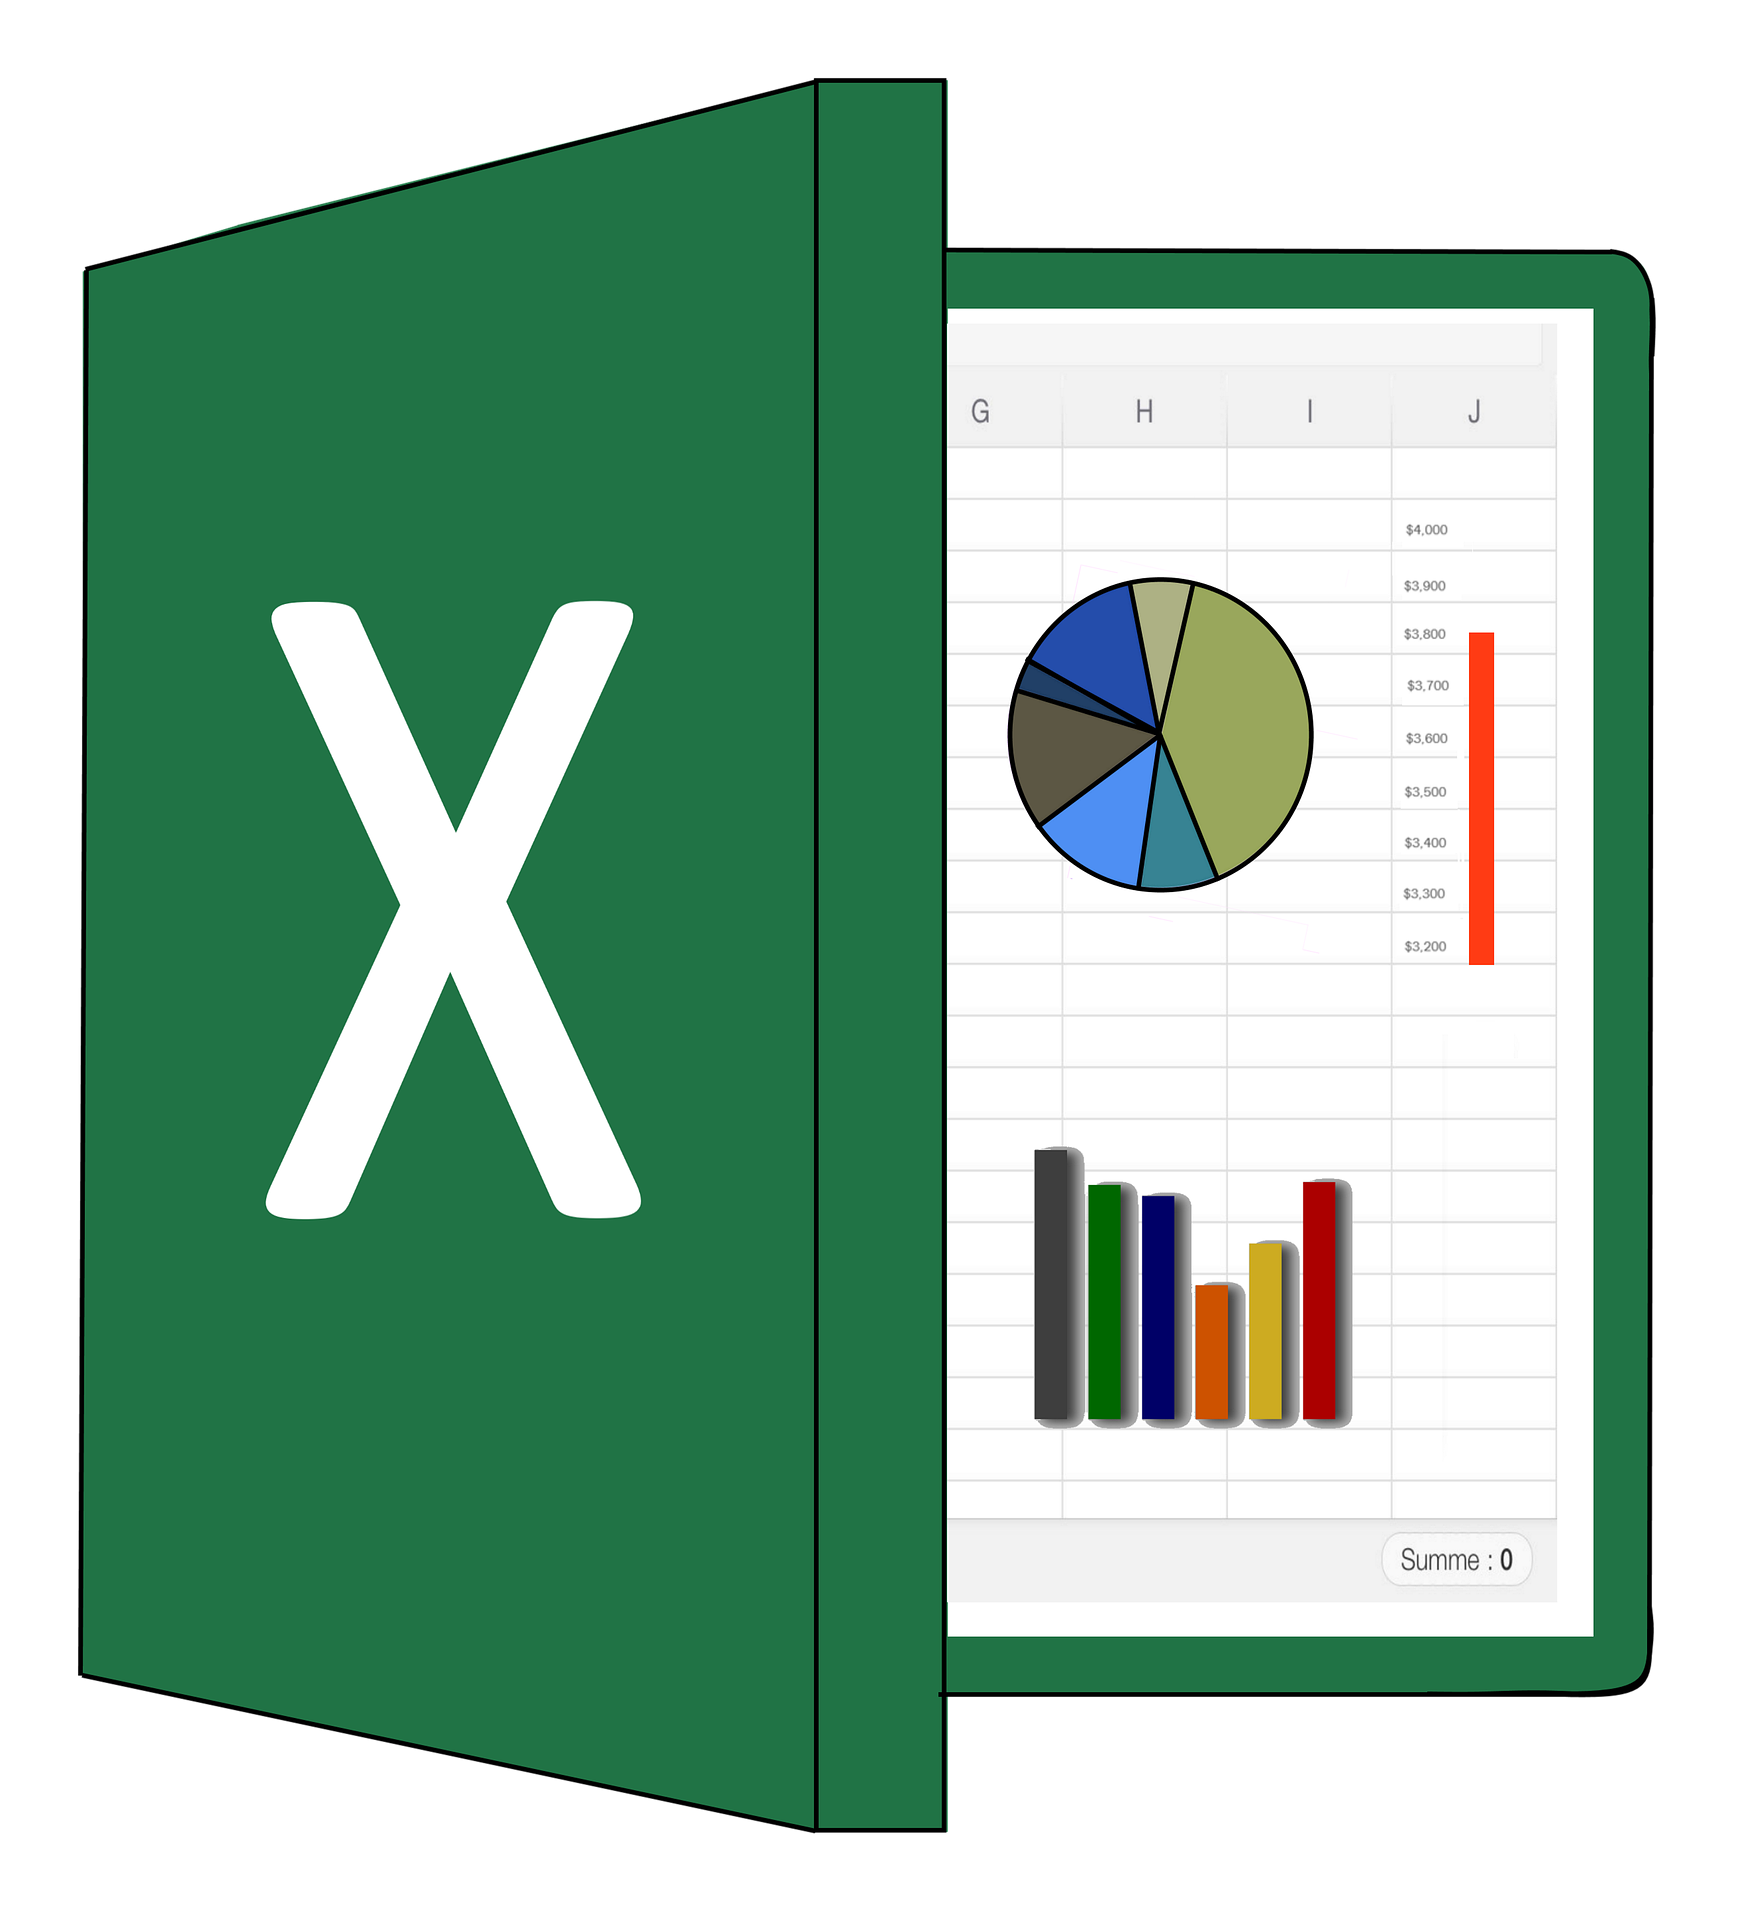 Surprising Things You Didn't Know About Microsoft Excel